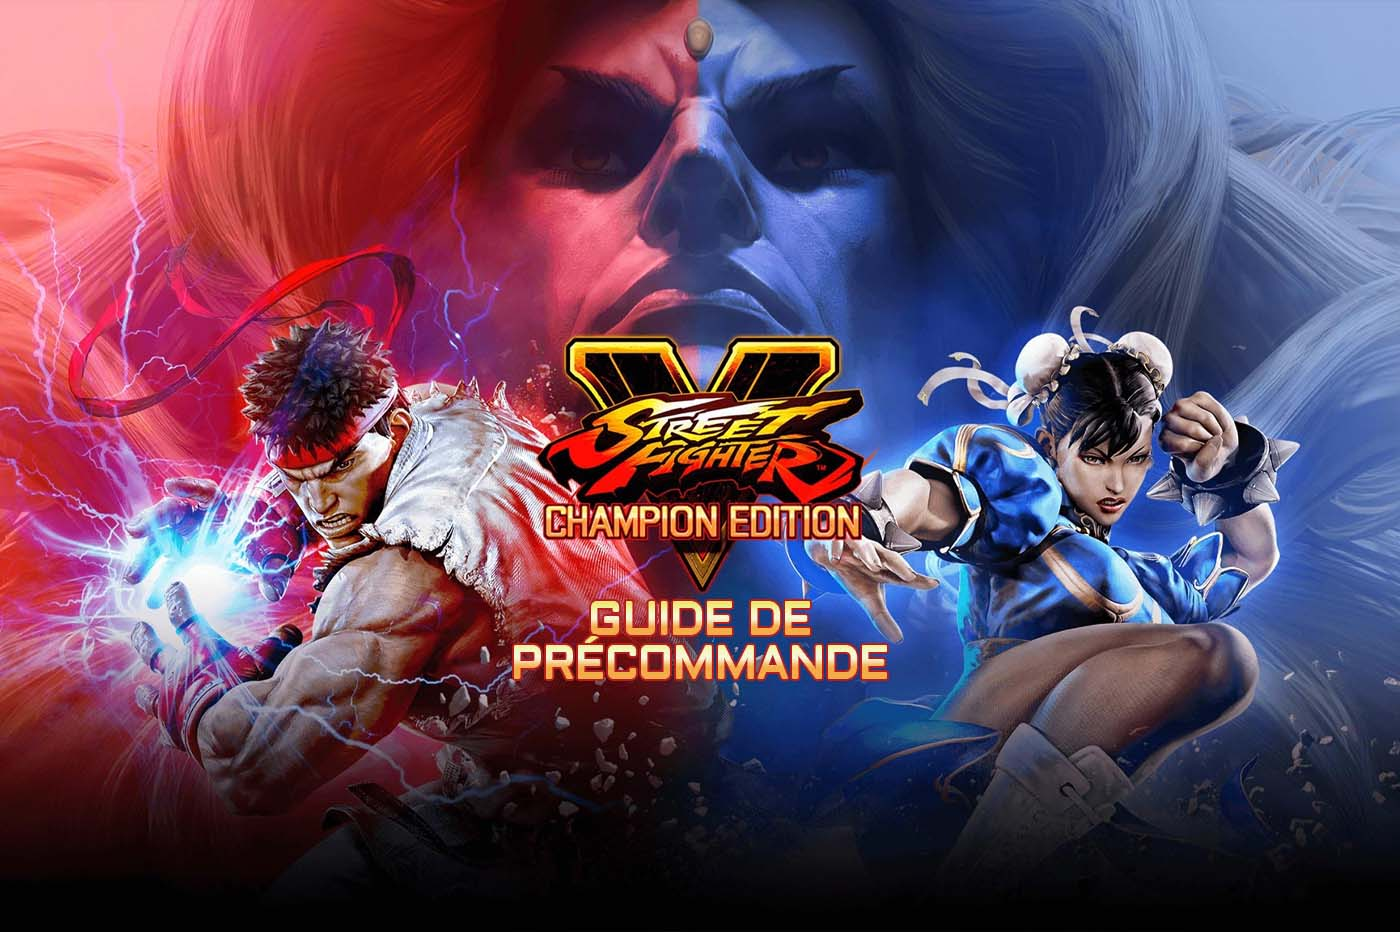 Guide Précommande Street Fighter V Champion Edition